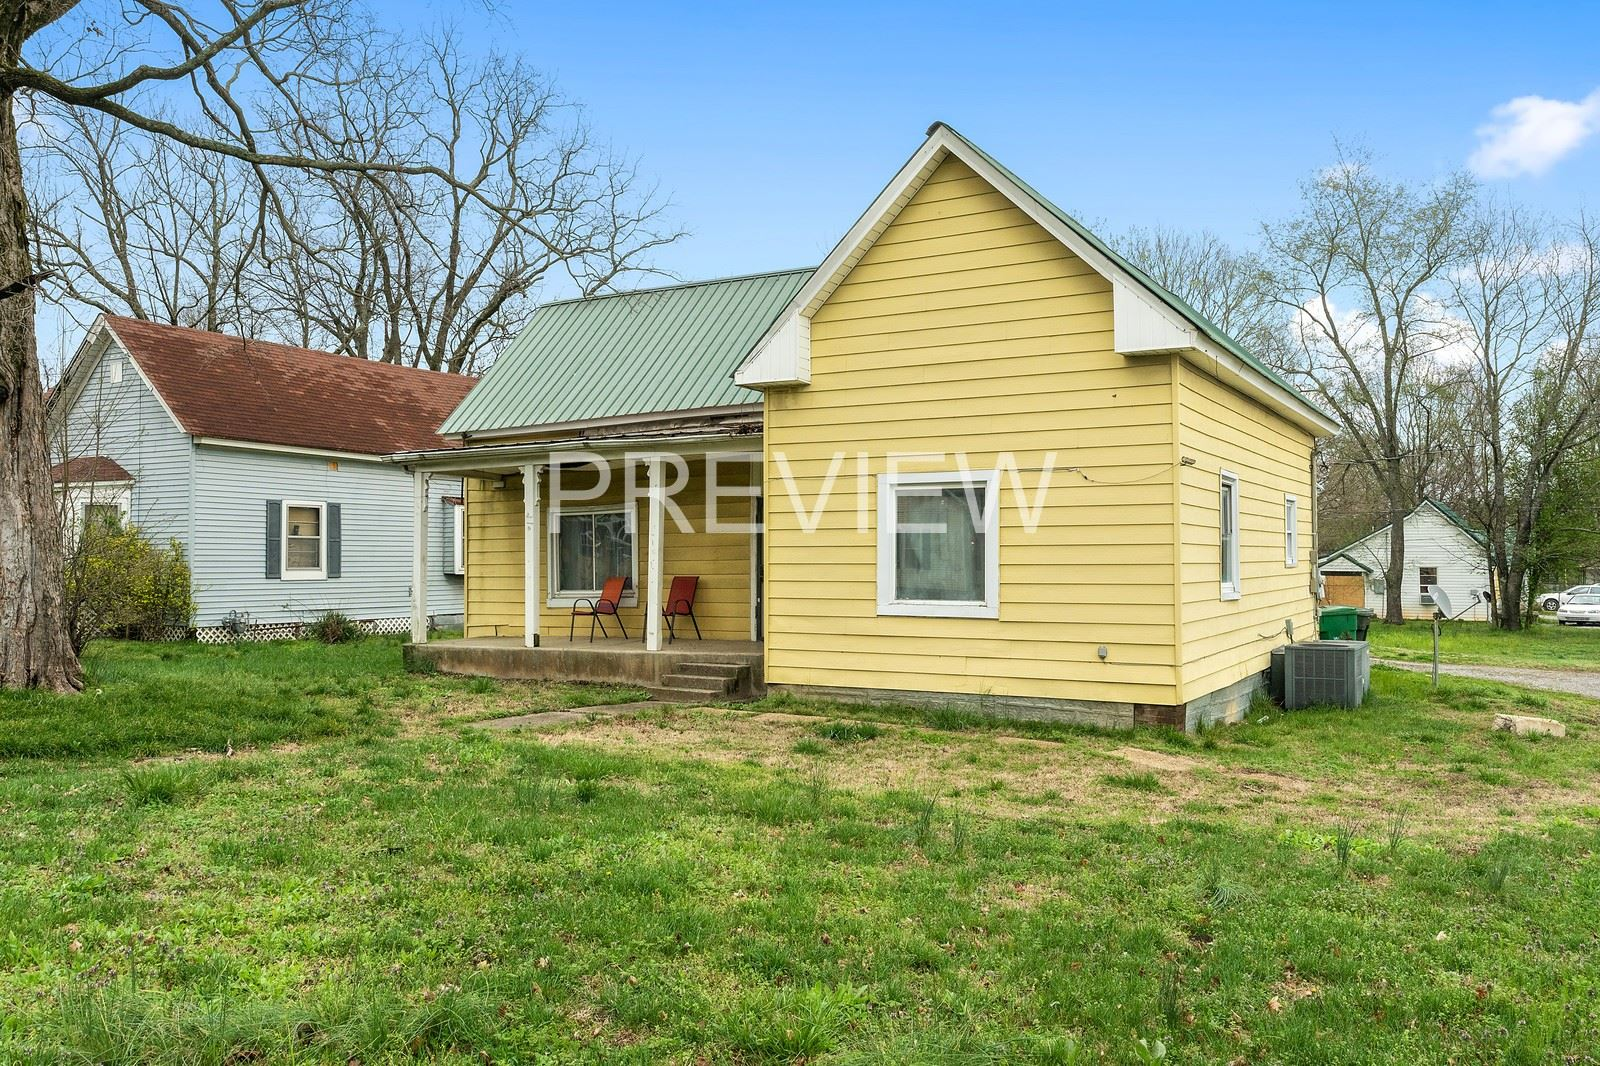 1508 S Main St, Springfield, TN 37172 - MLS#: 2134608